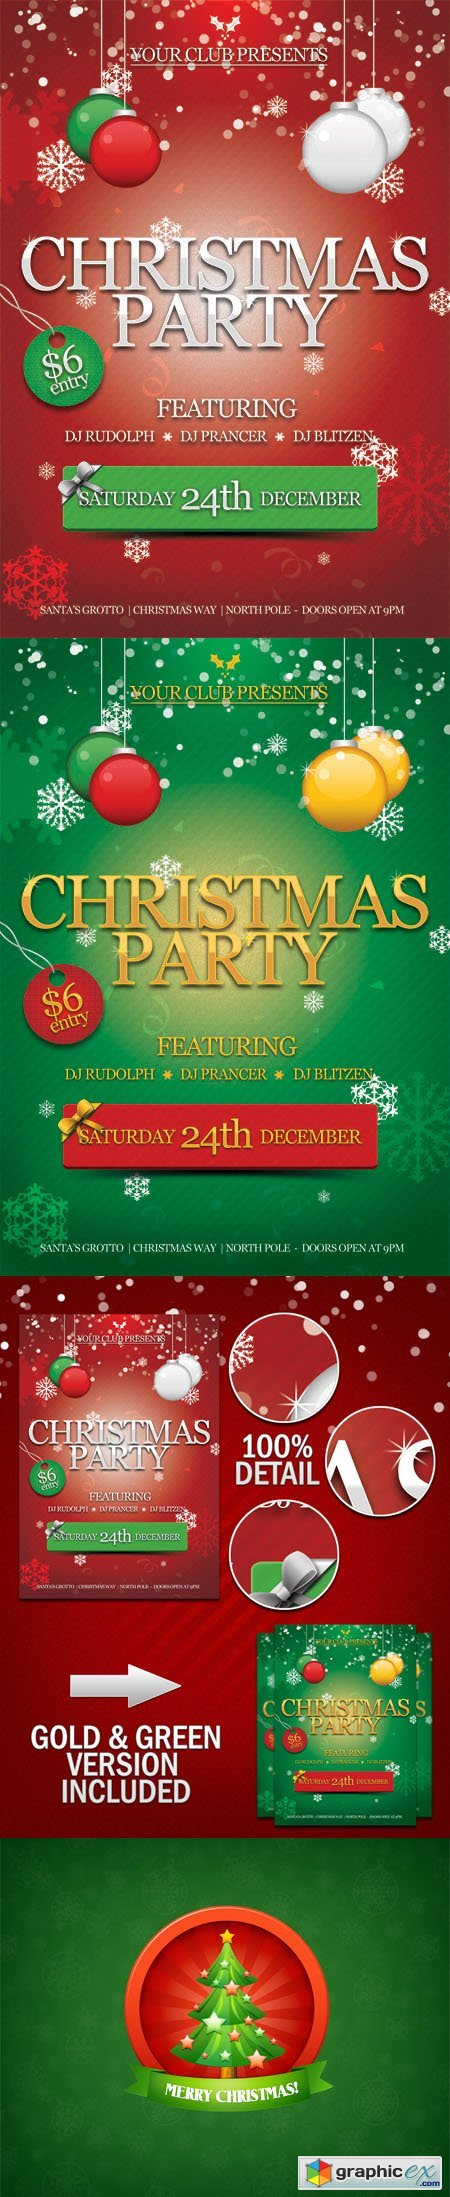 Christmas Party Flyer PSD Template + Christmas Tree PSD